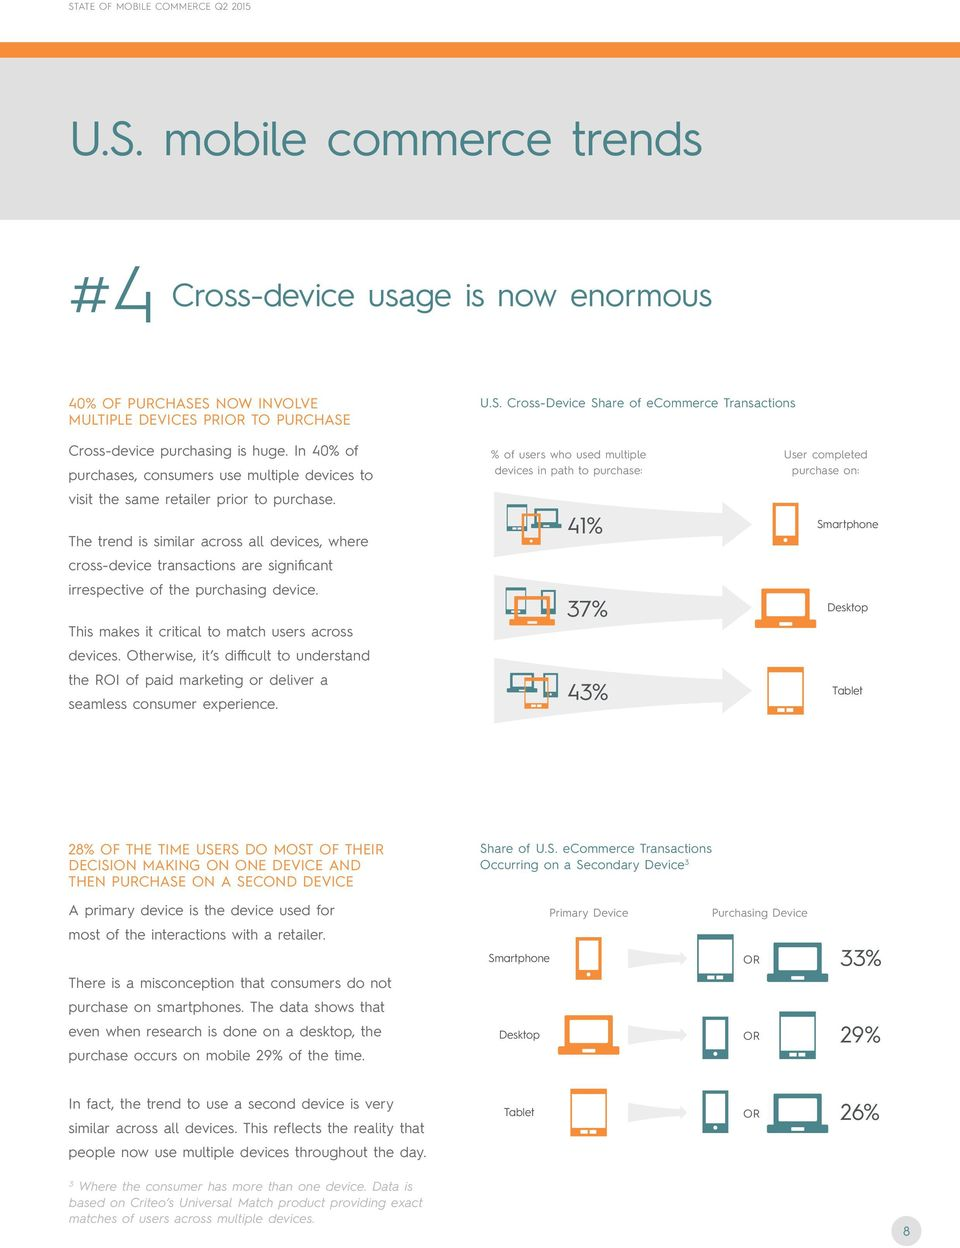 The trend is similar across all devices, where cross-device transactions are significant irrespective of the purchasing device. This makes it critical to match users across devices.